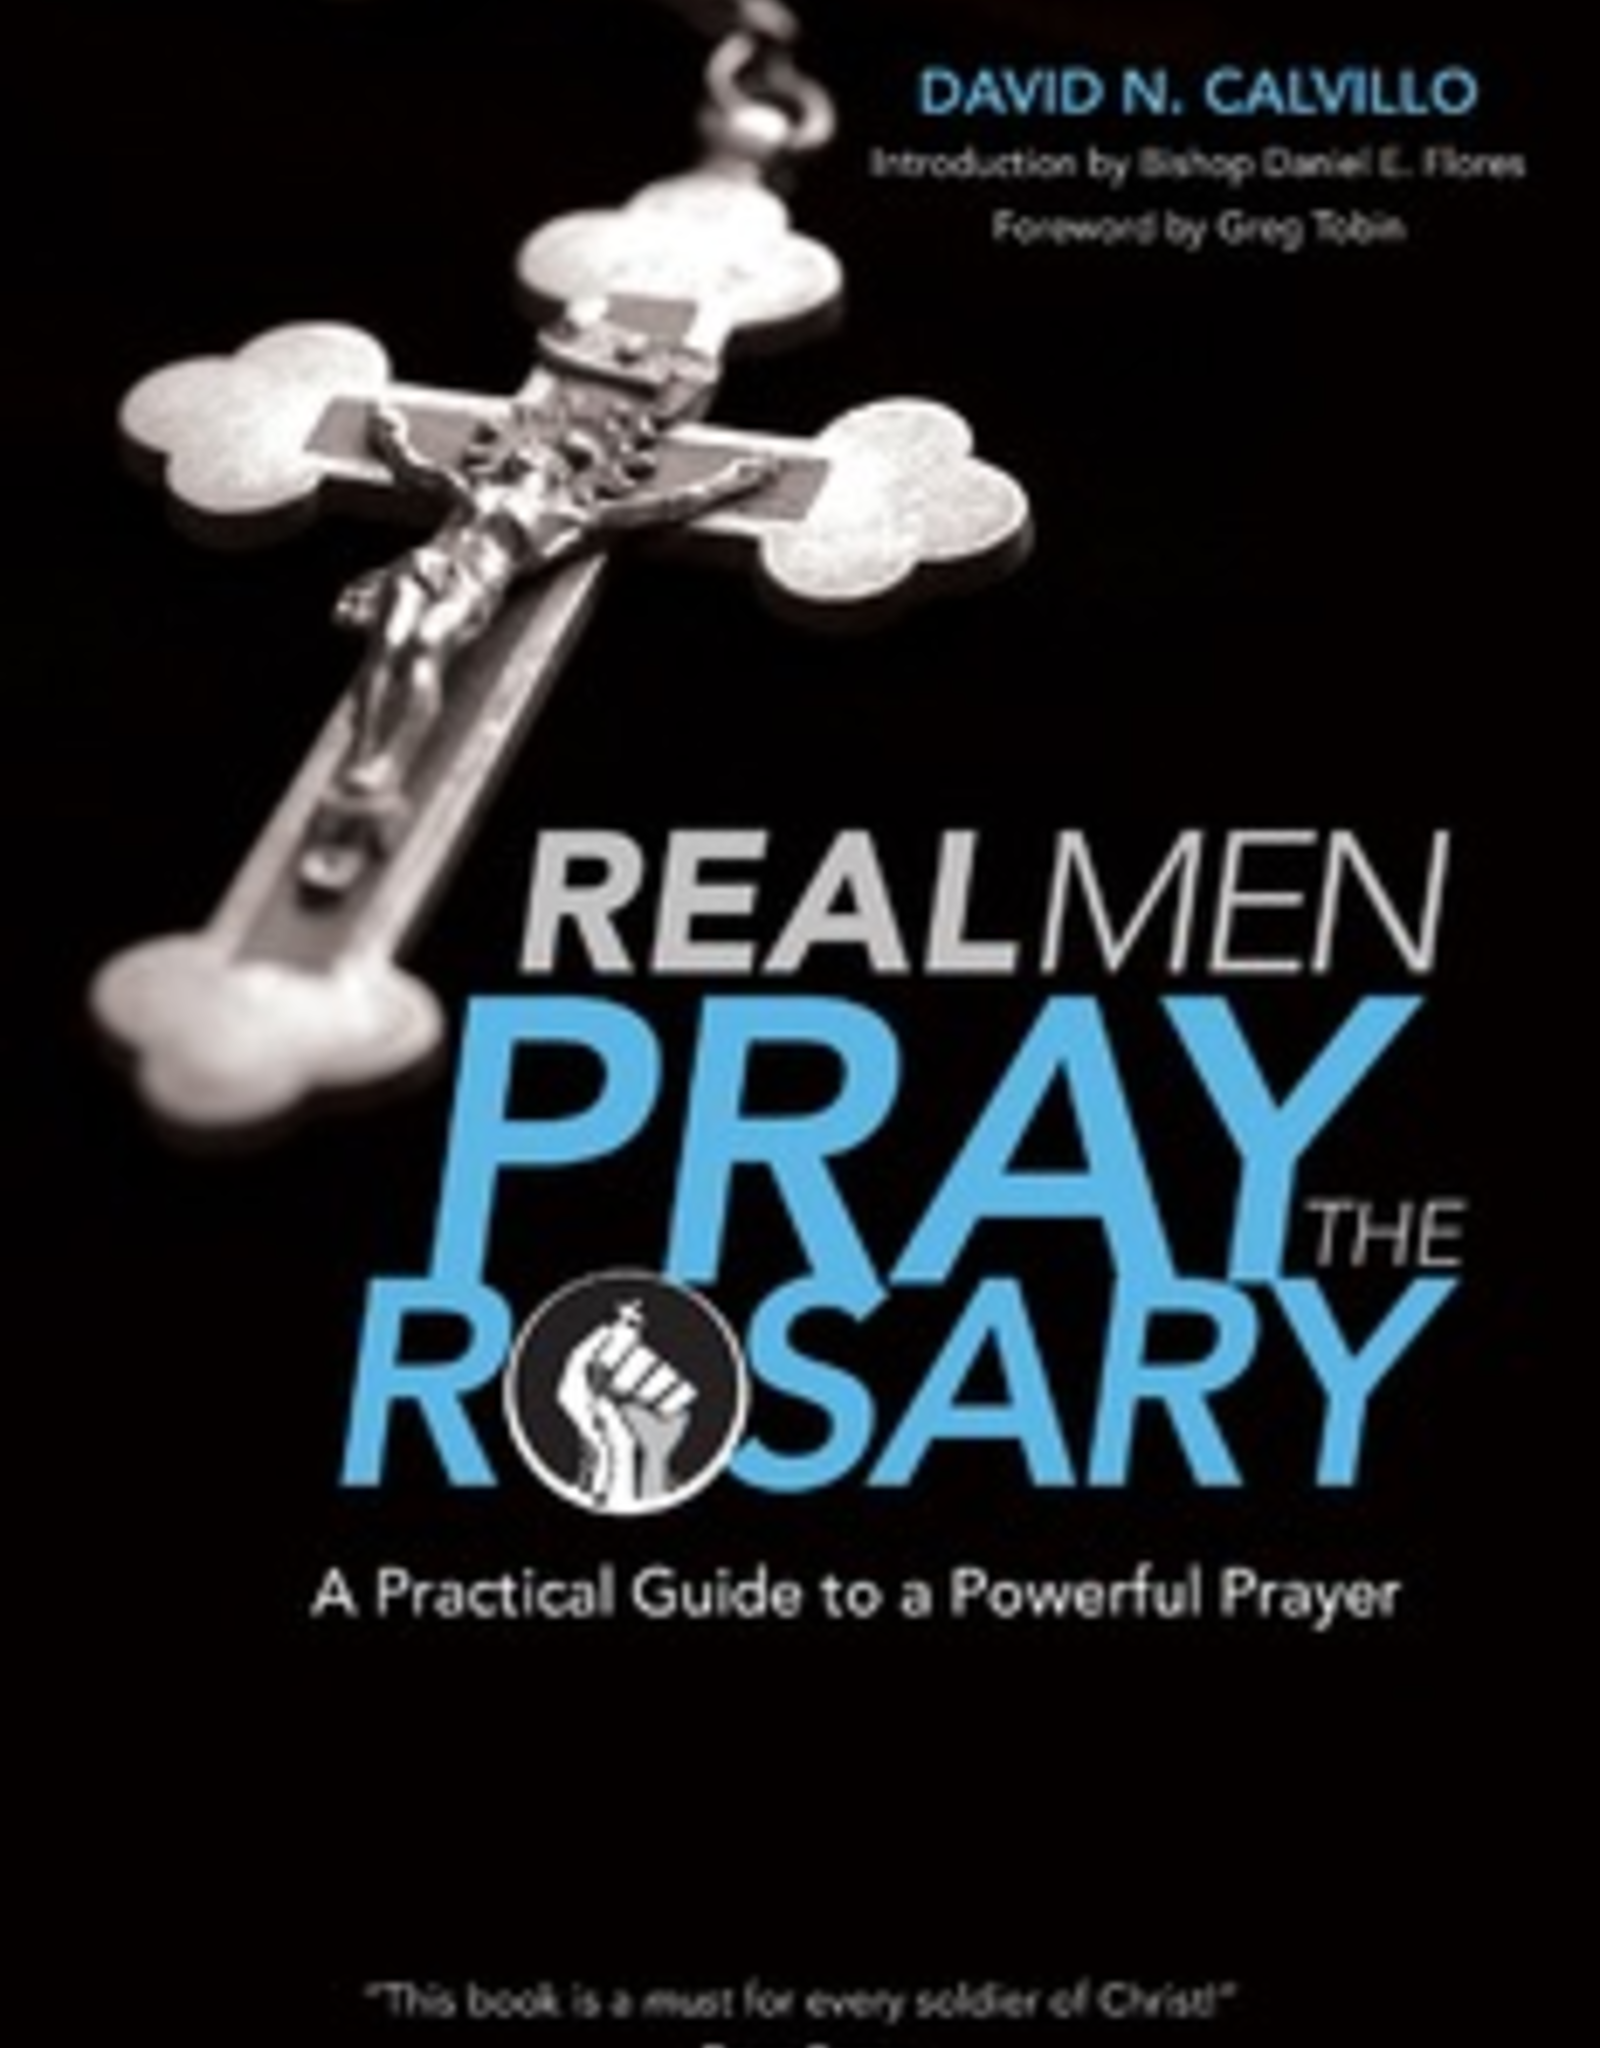 Ave Maria Press Real Men Pray the Rosary:  A Practical Guide to a Powerful Prayer, by David Calvillo (paperback)